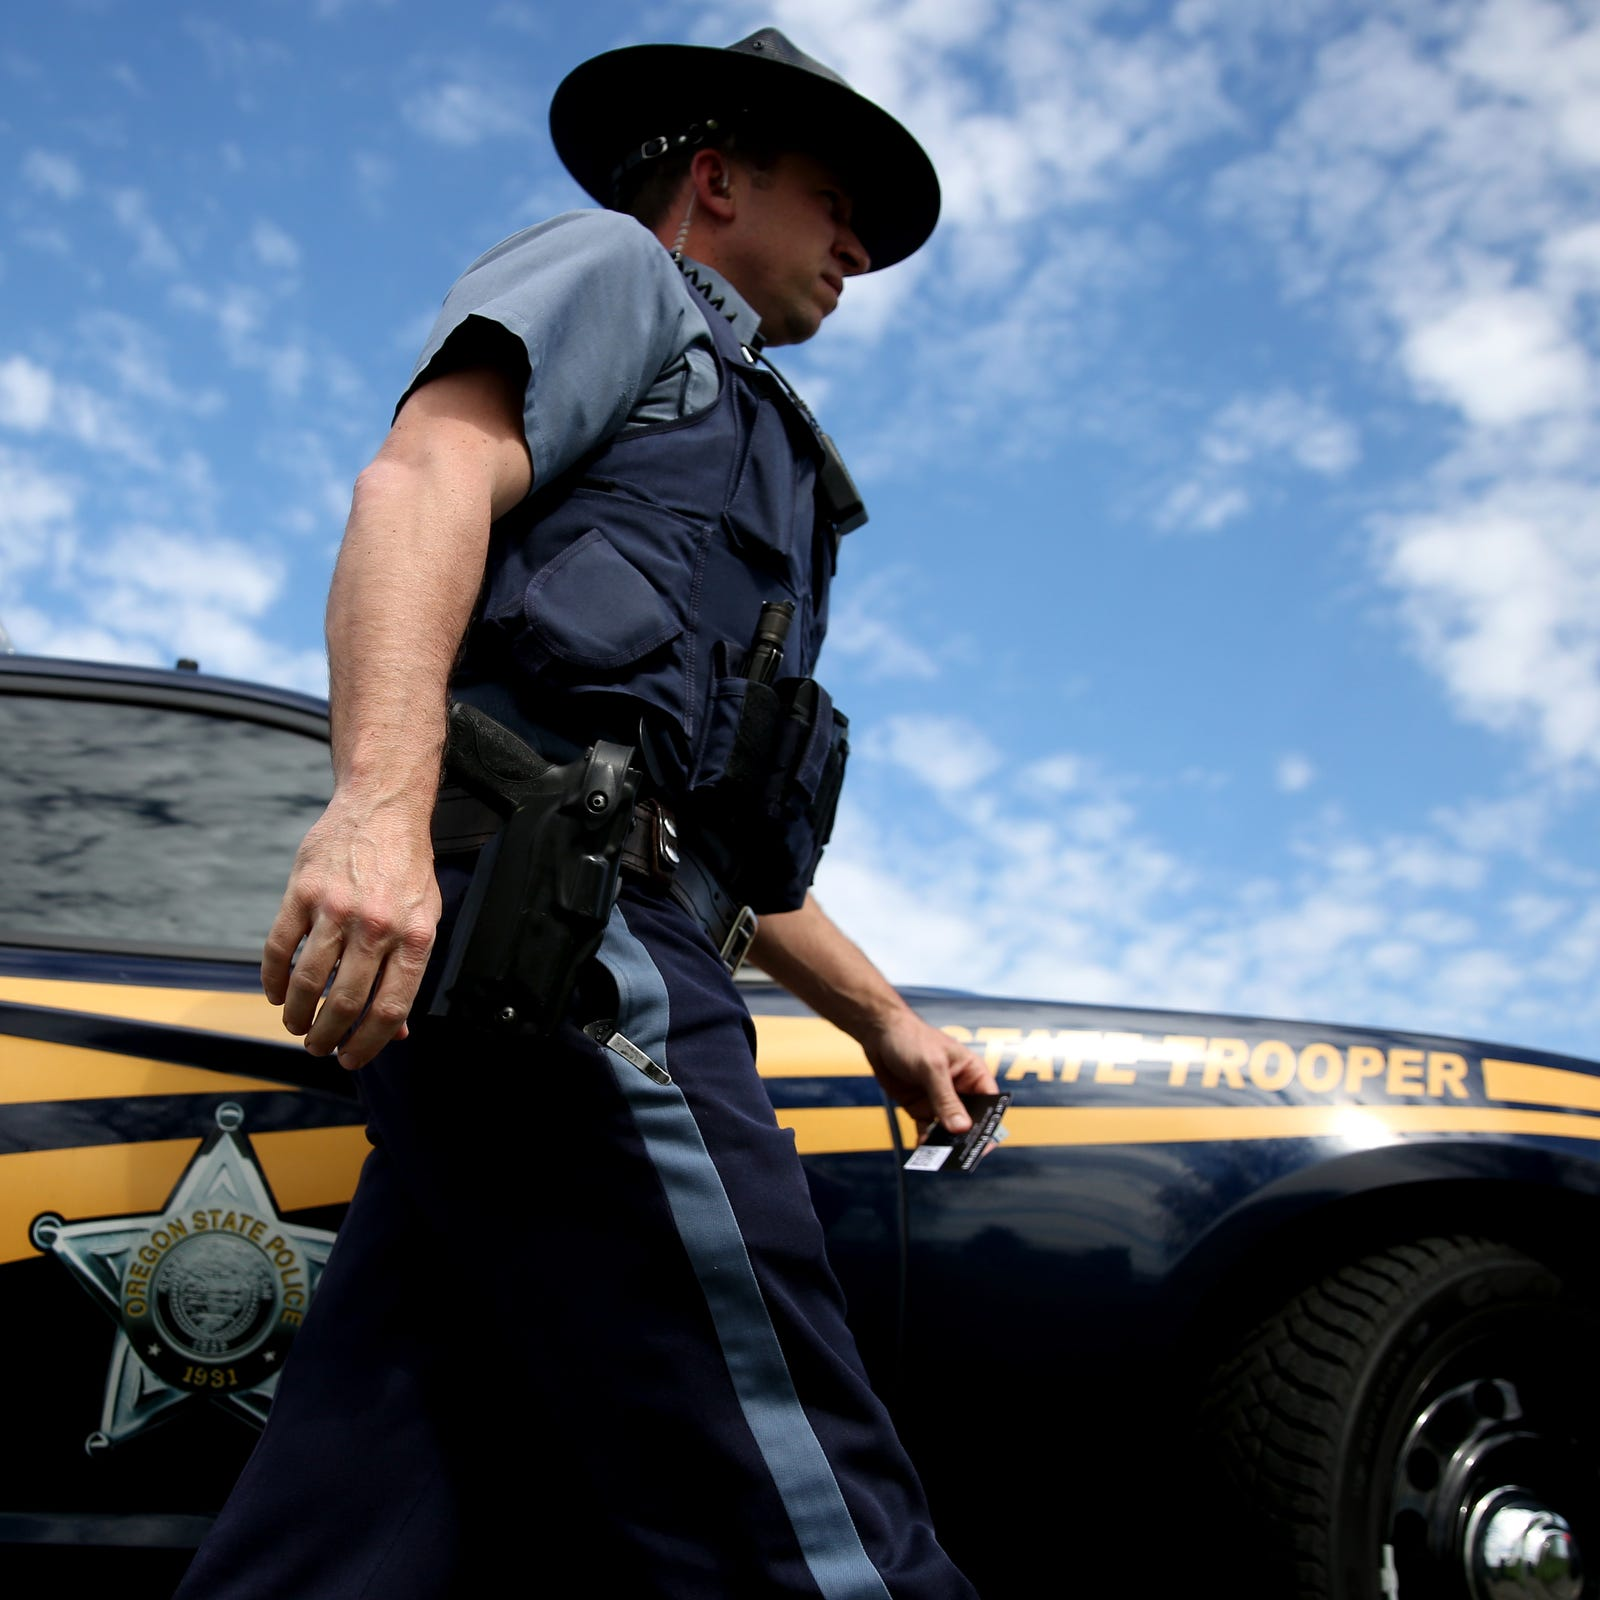 Oregon State Police wants to hire at least 300 troopers by 2030